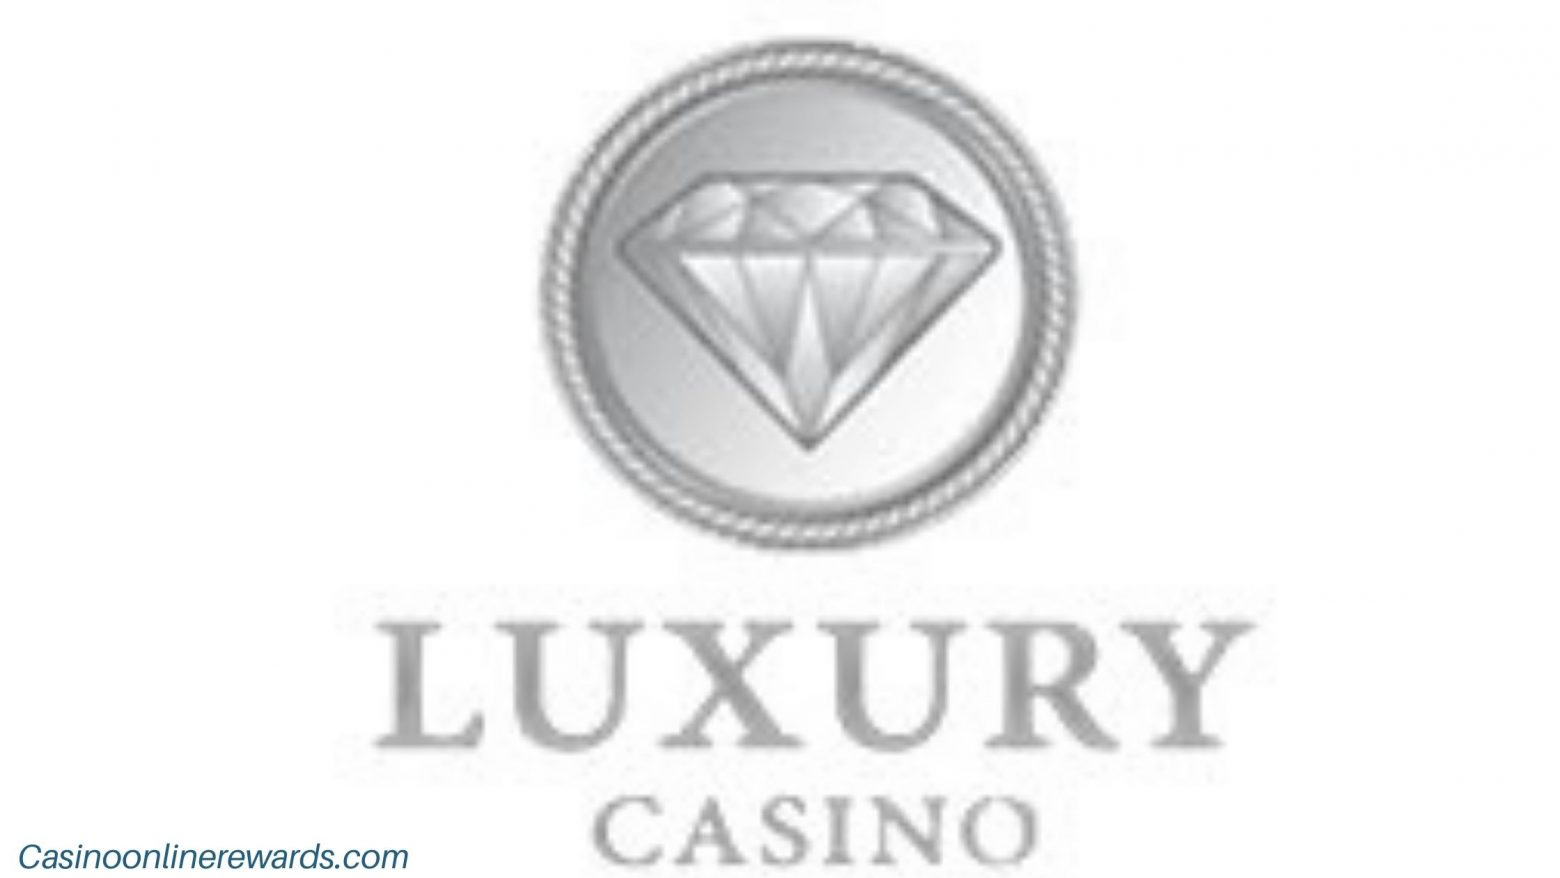 The Best Details You Can Get for the Luxury Casino